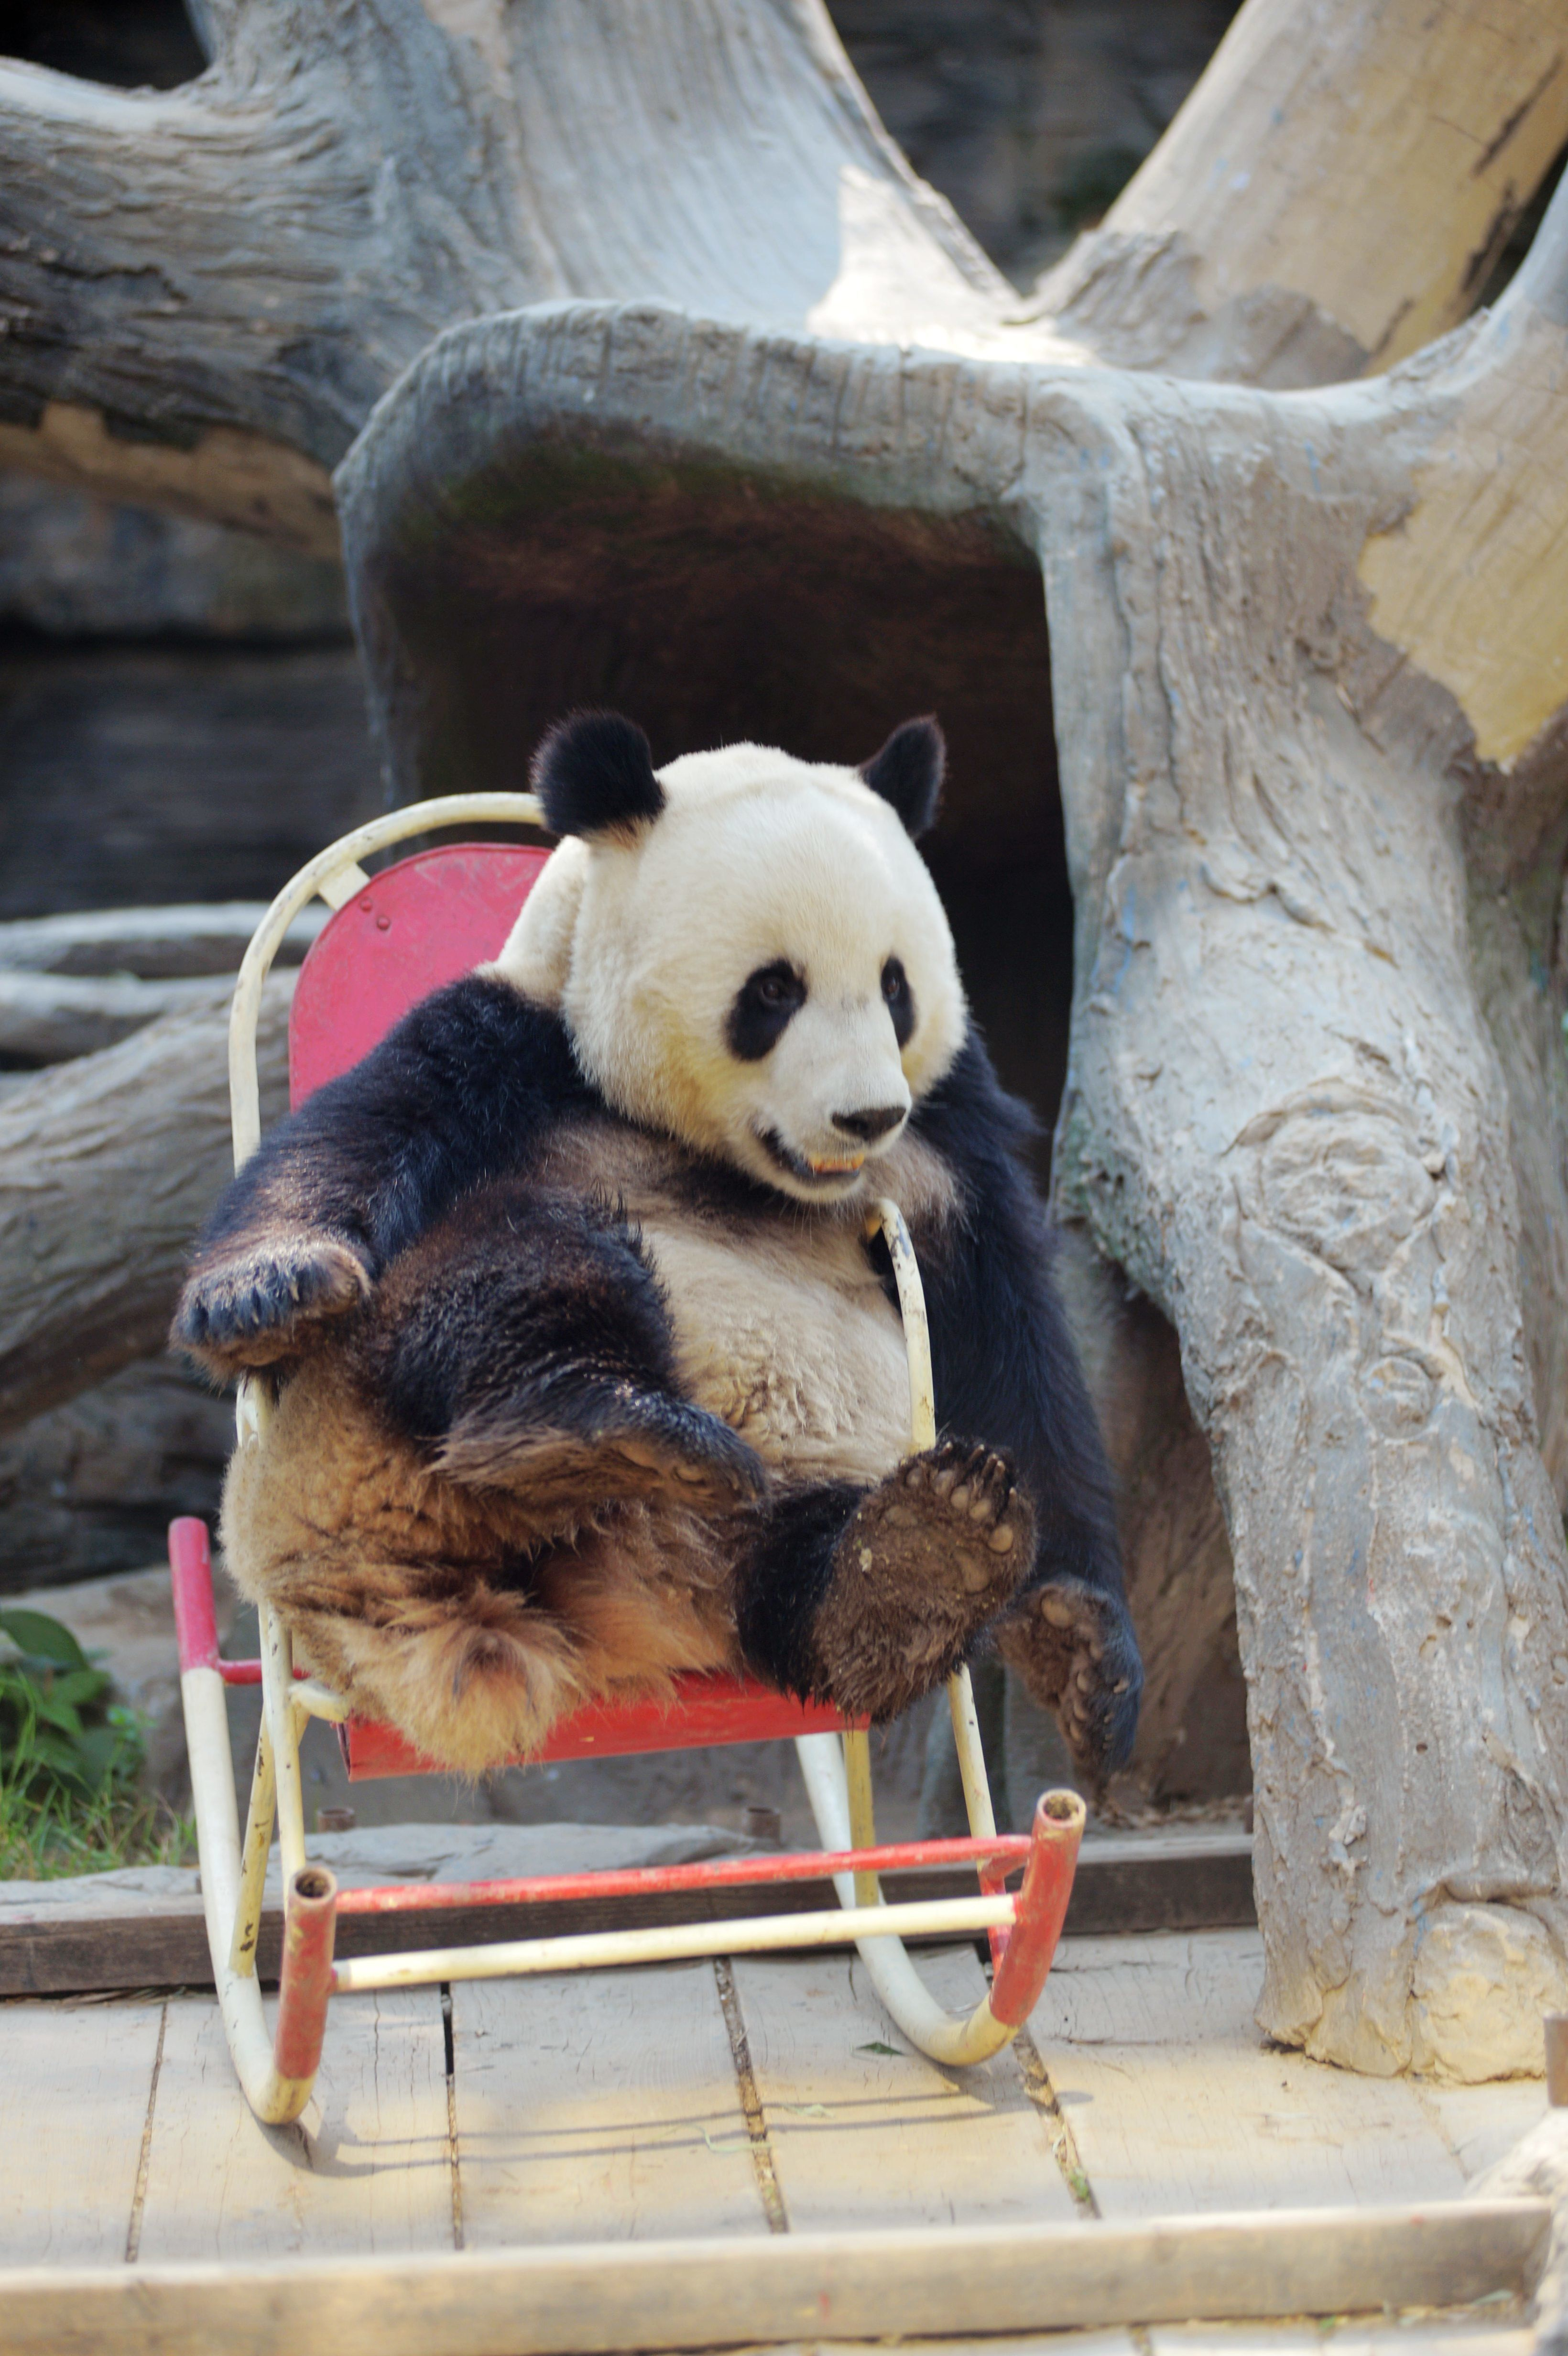 BEIJING, CHINA - MAY 17:  A giant panda plays in a rocking chair at Beijing Zoo on May 17, 2017 in Beijing, China.  (Photo by VCG/VCG via Getty Images)